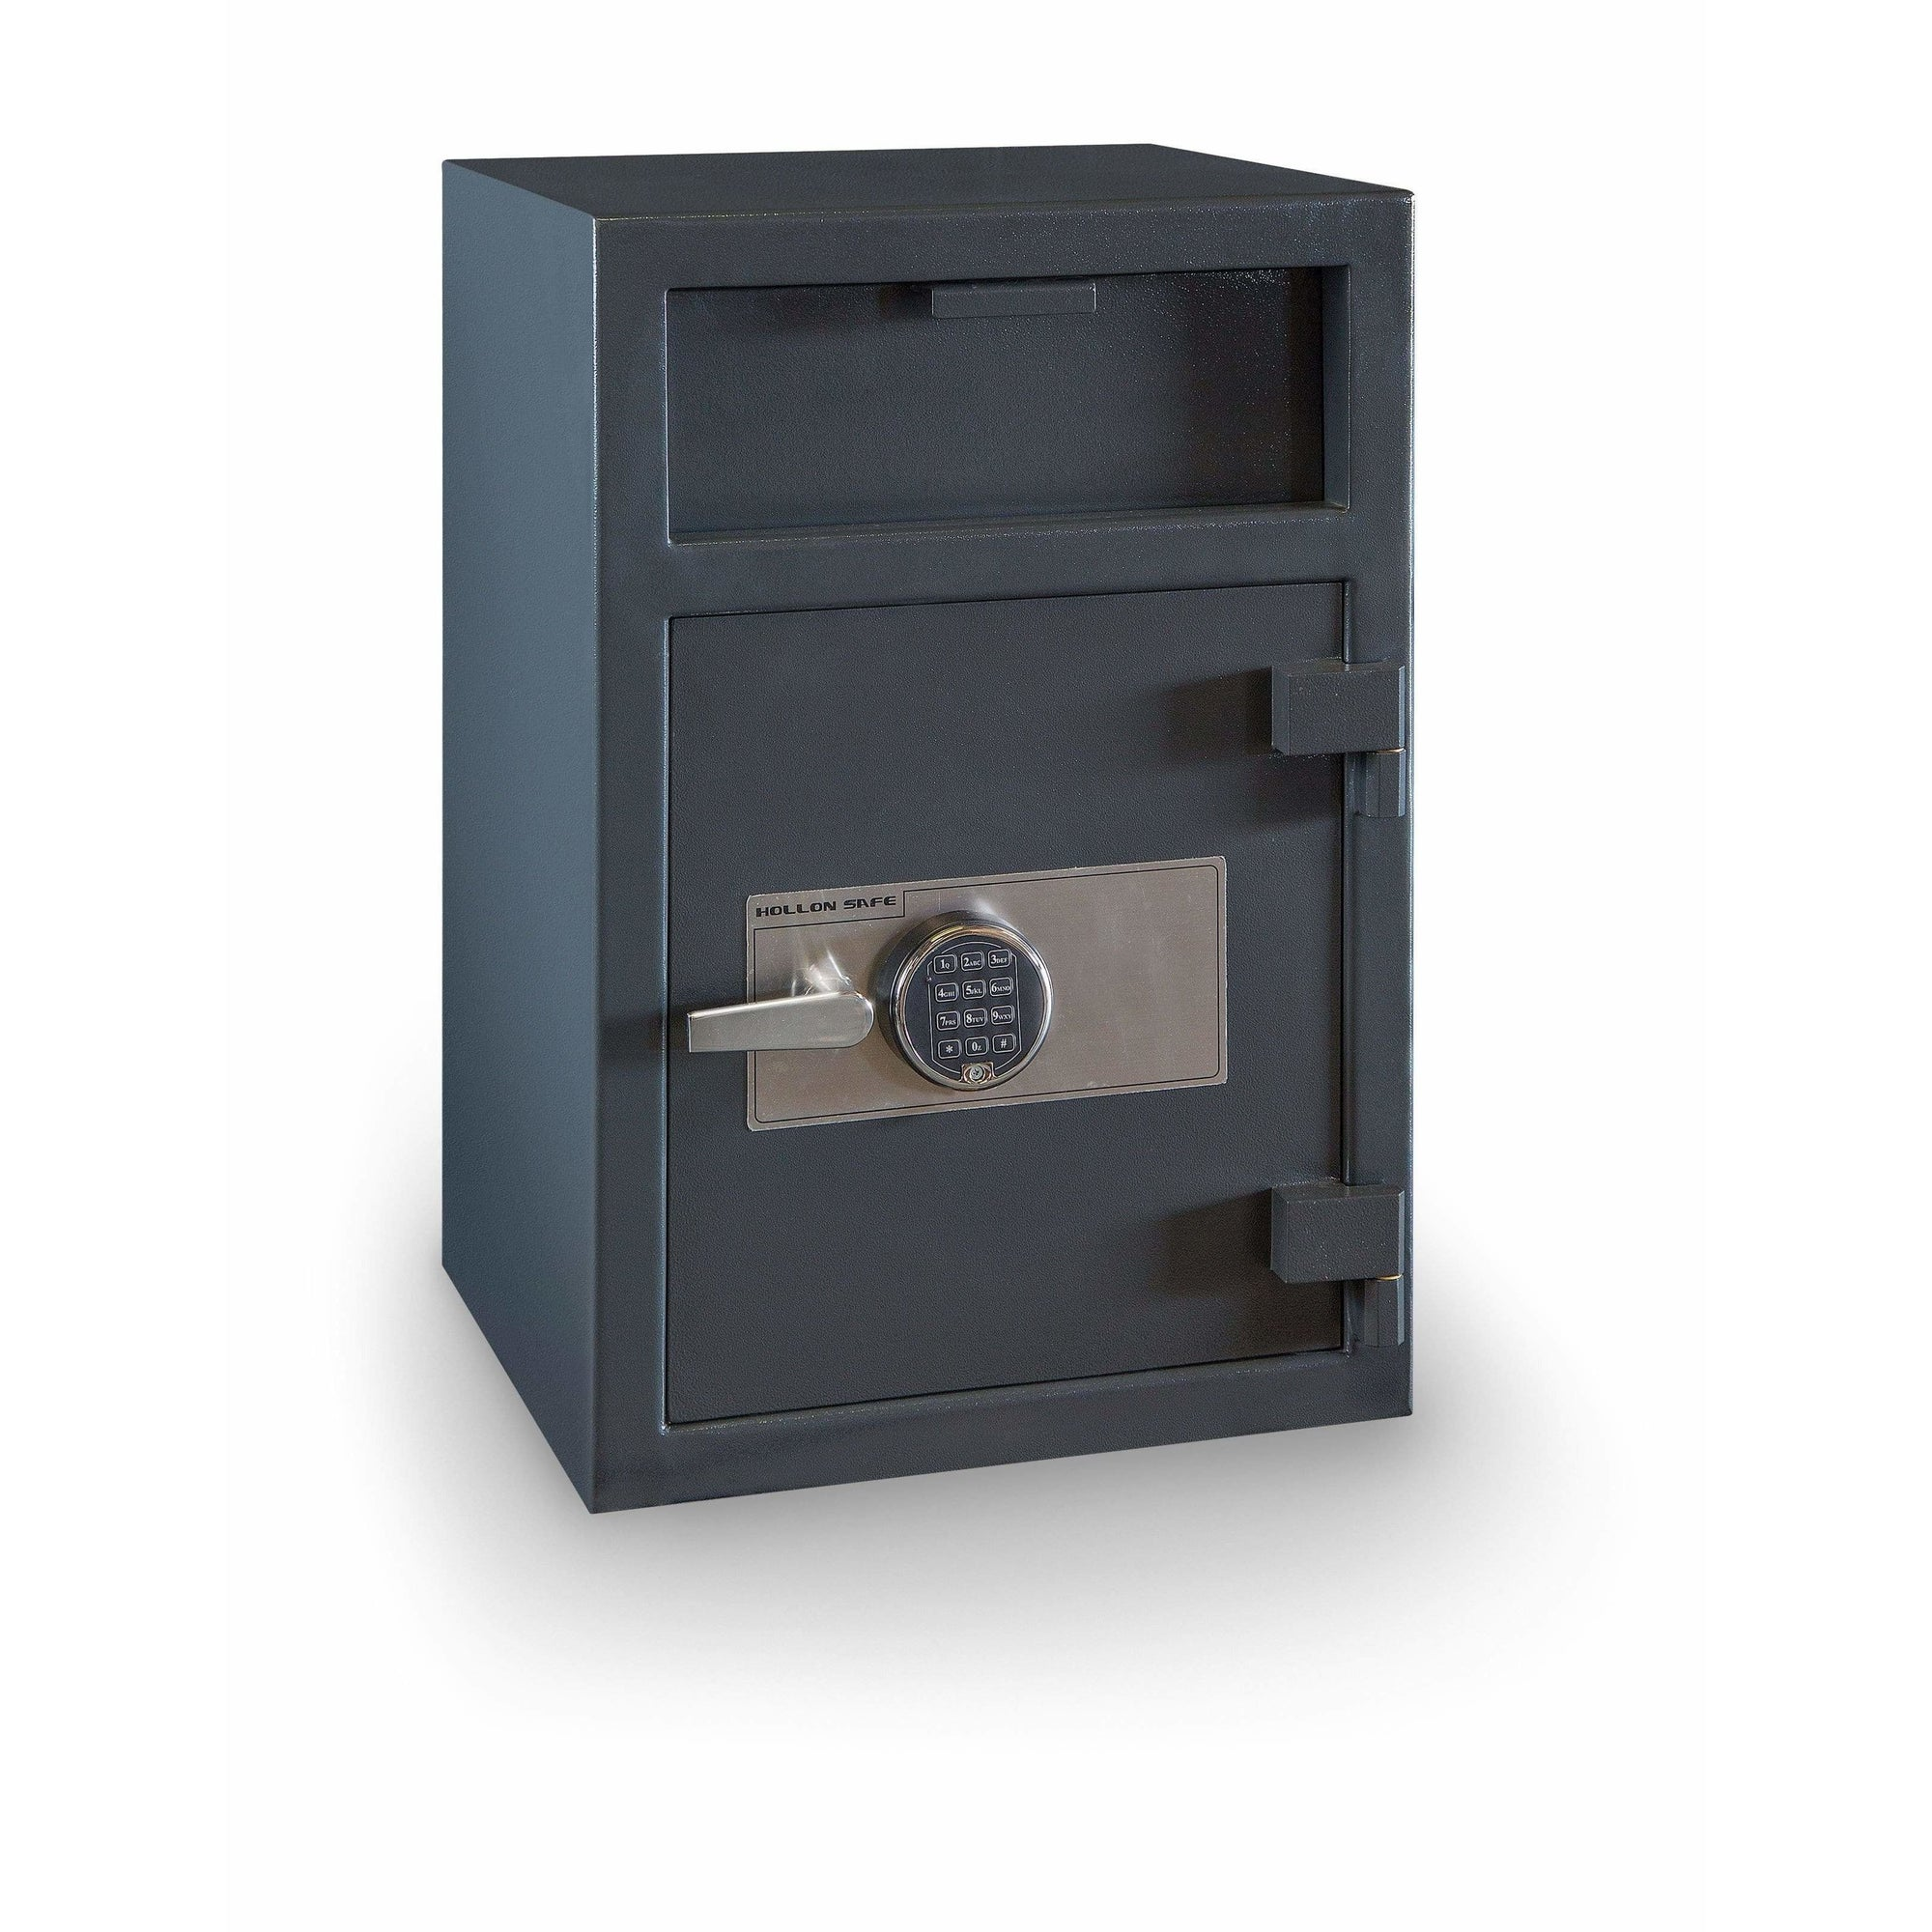 Hollon Safe Deposit Safe Hollon Safe Depository Safe with Inner Locking Compartment FD-3020EILK FD-3020EILK